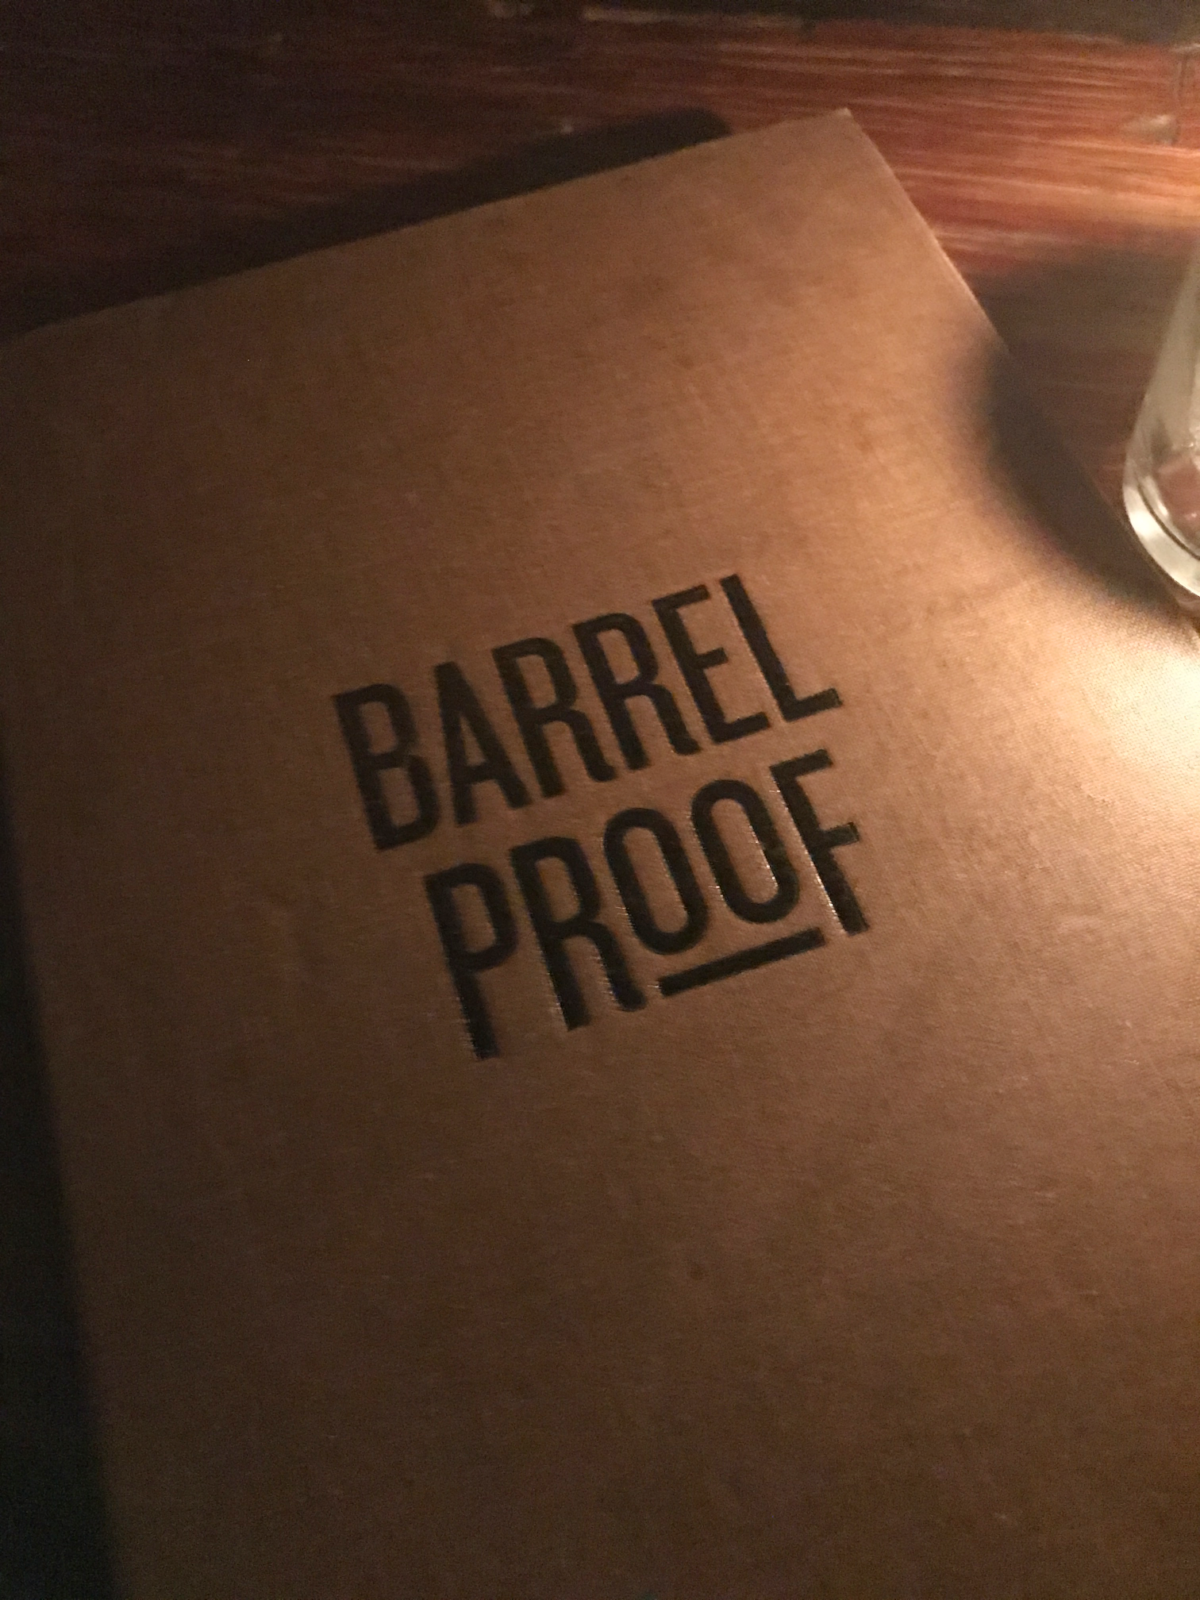 New Orleans Barrel Proof